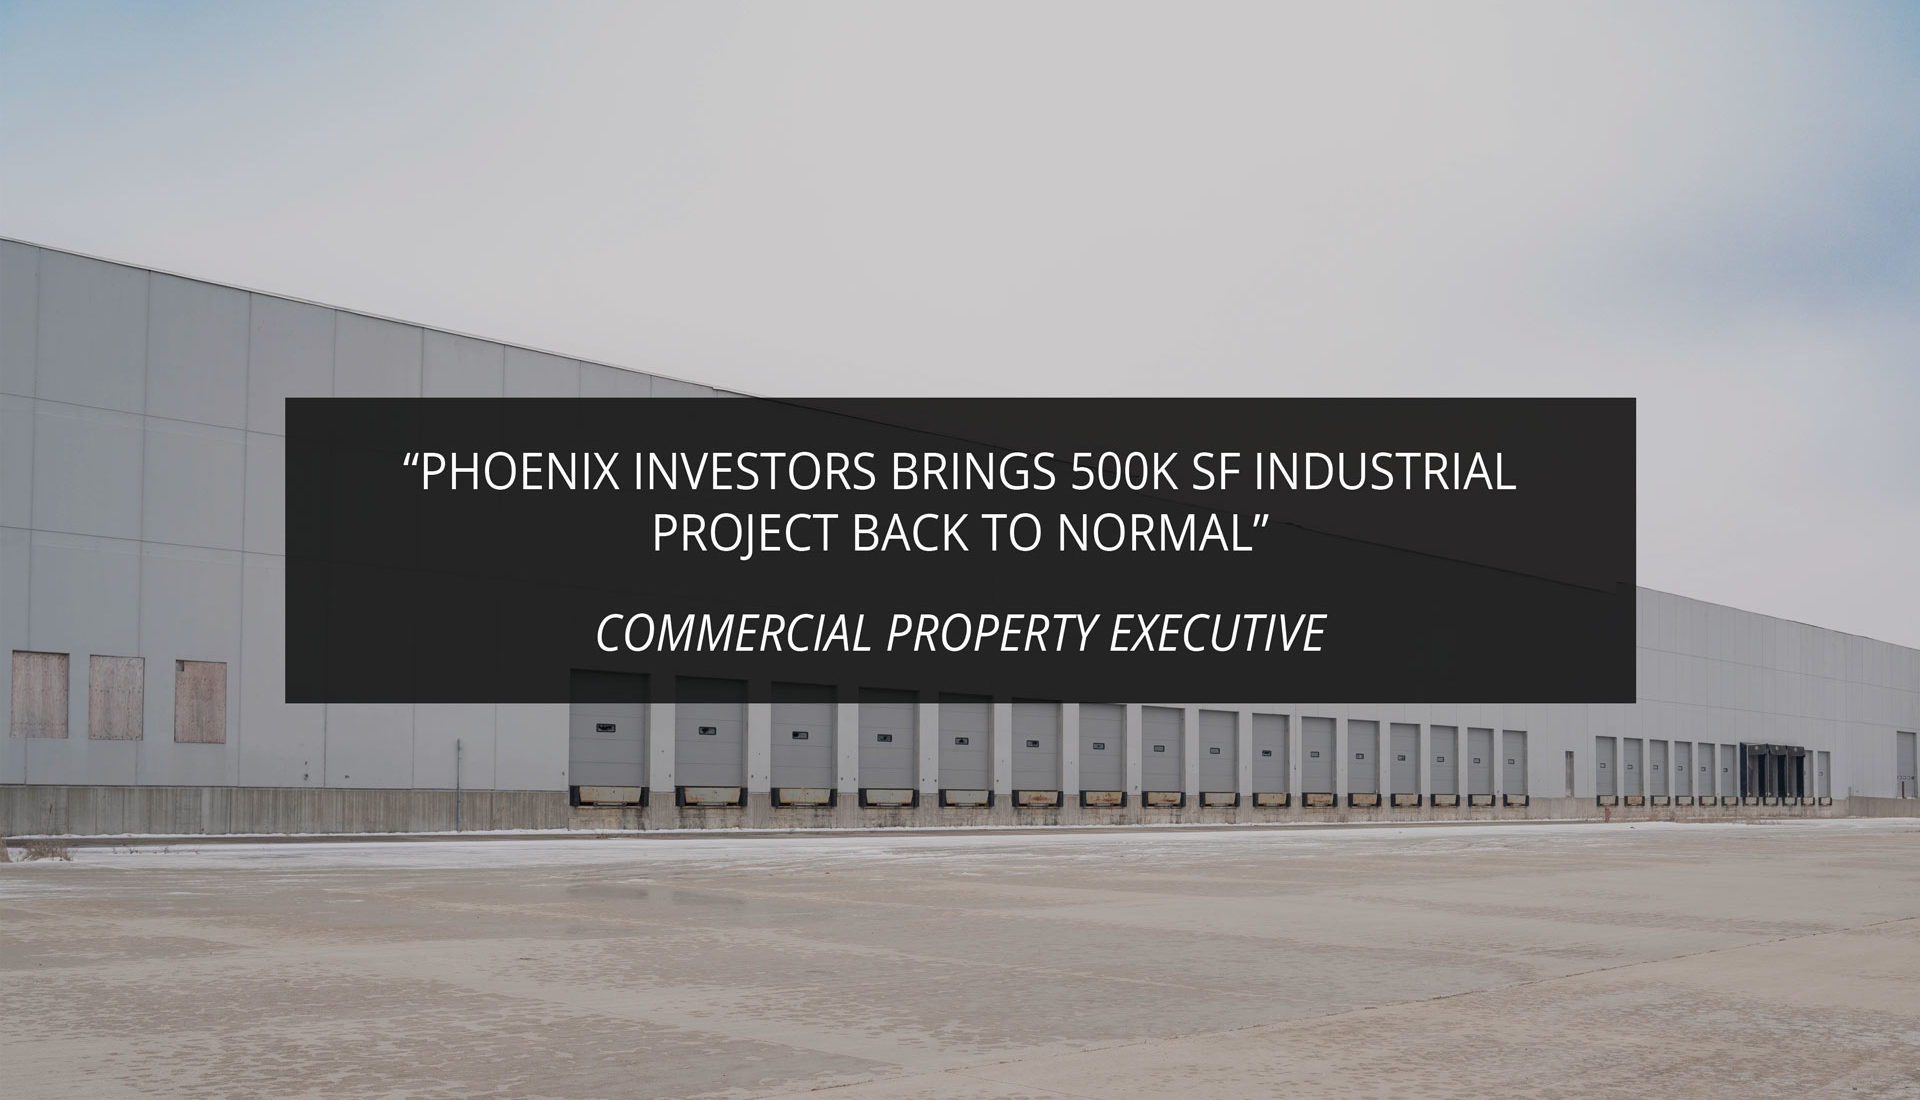 Phoenix Investors Brings 500K SF Industrial Project Back to Normal